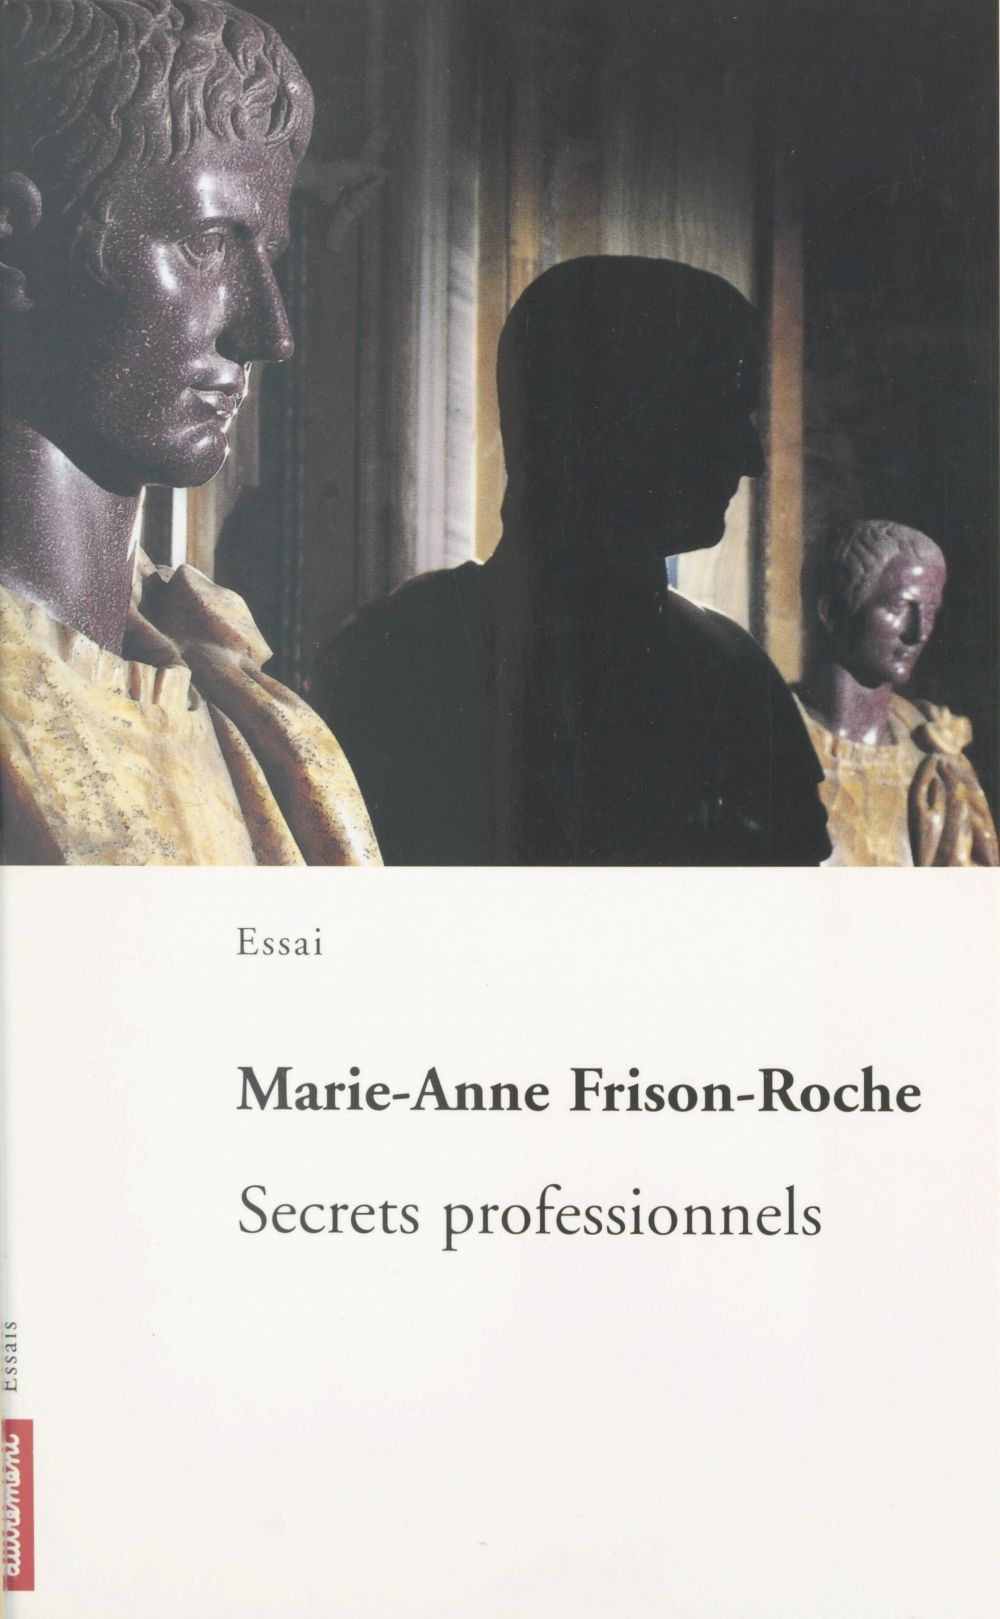 Secrets professionnels